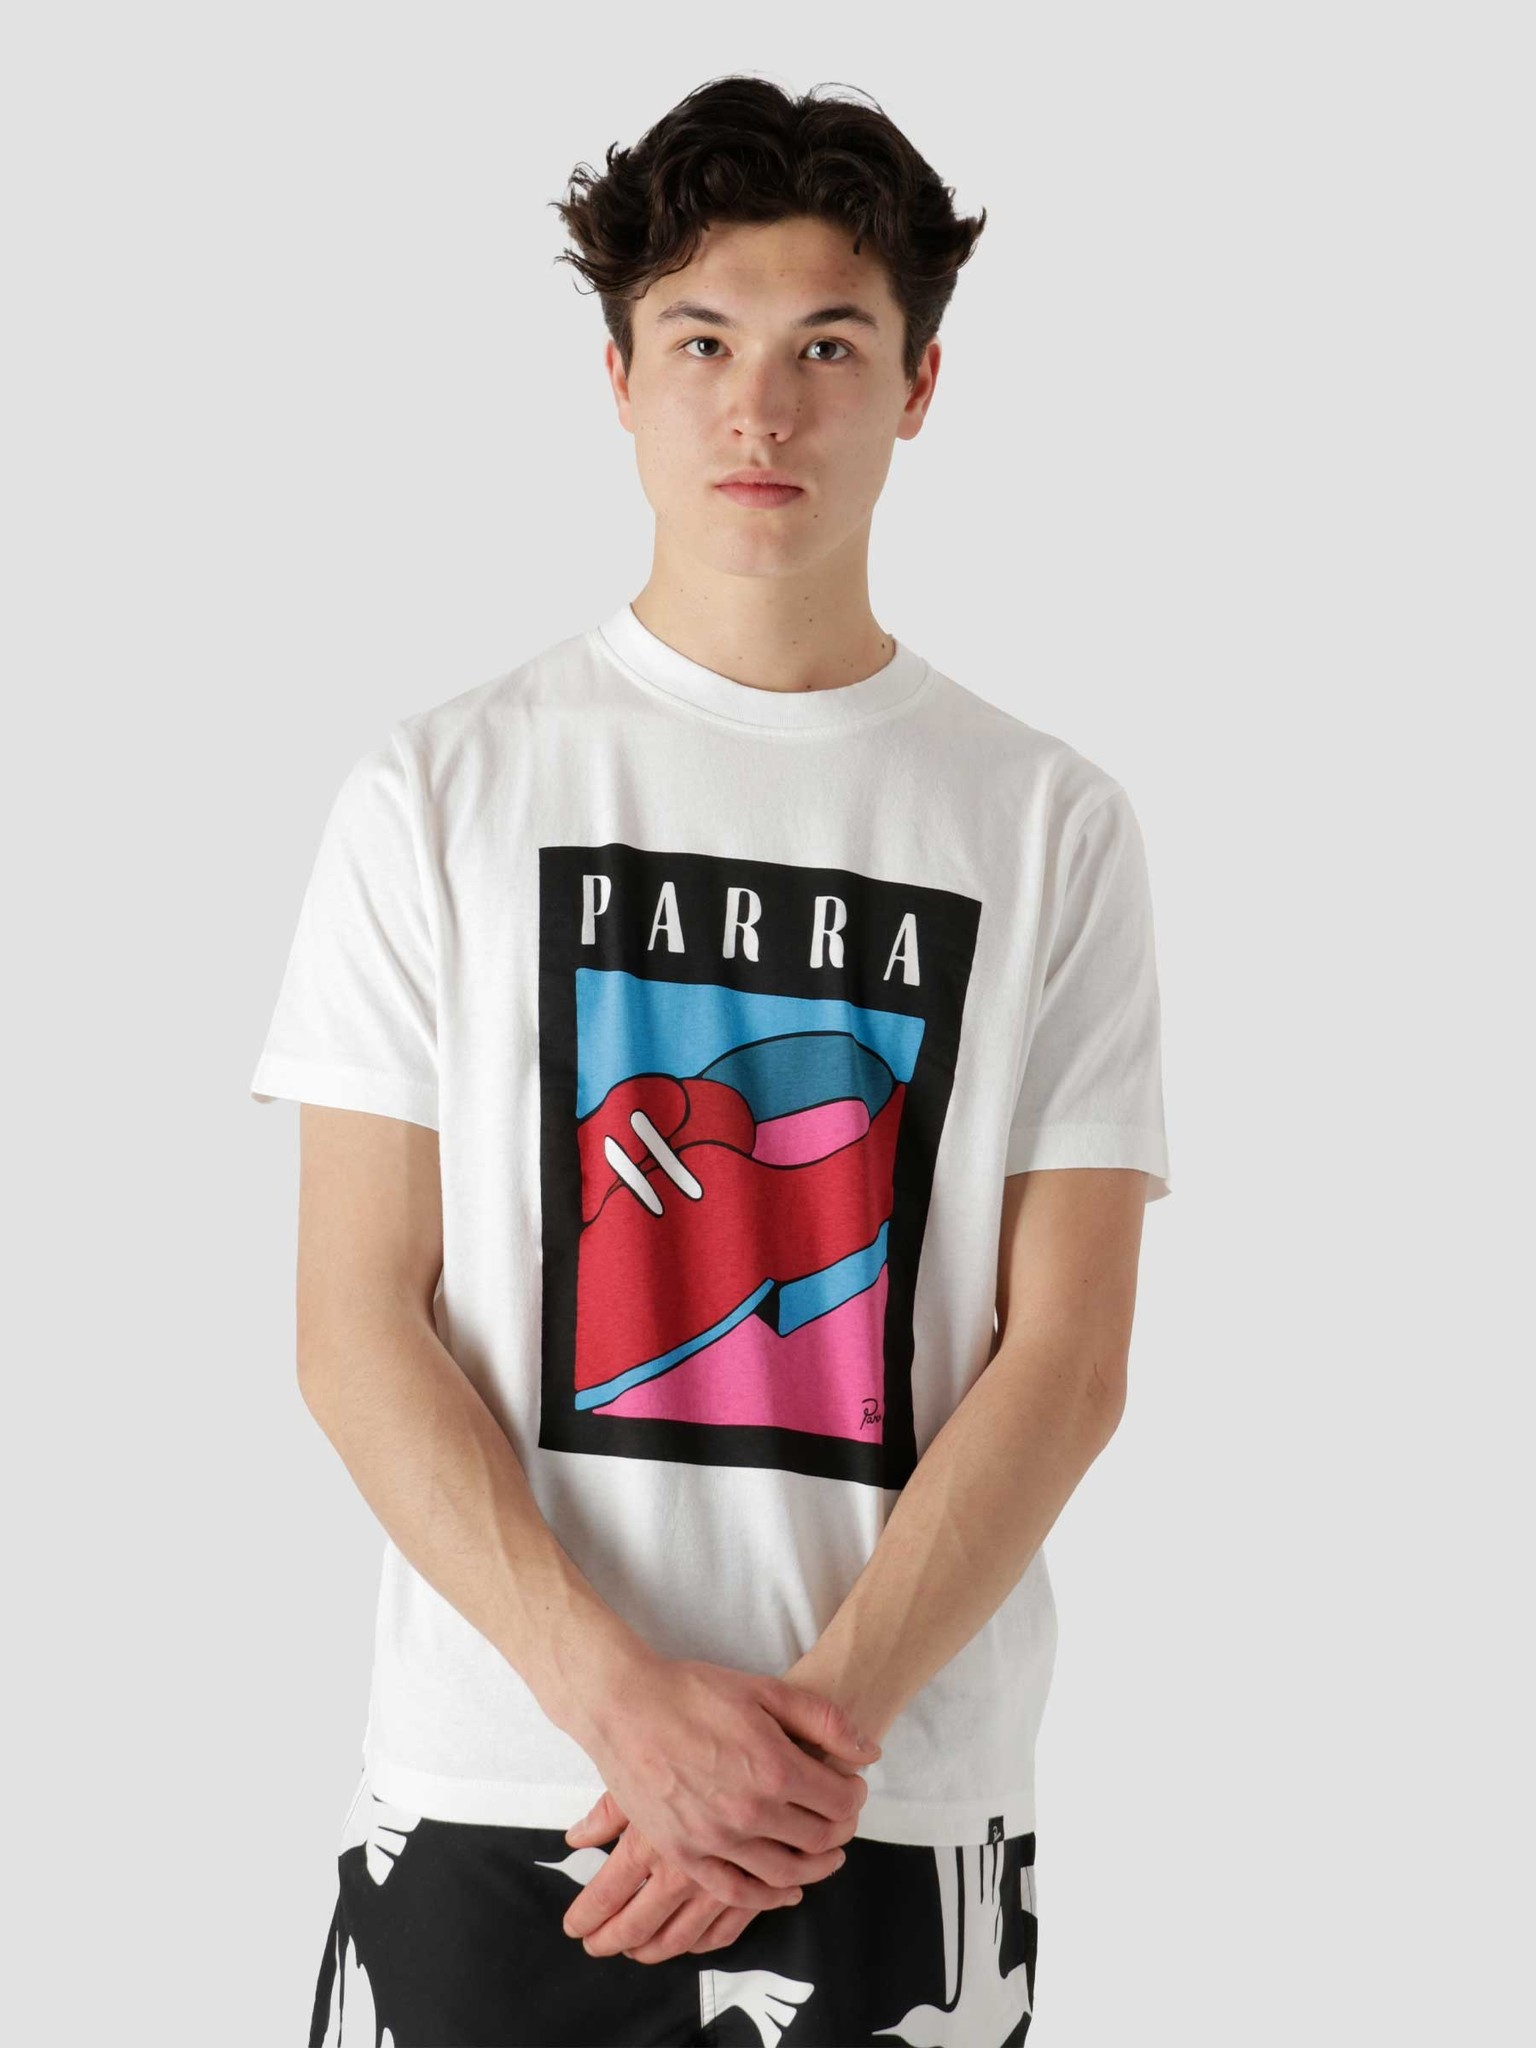 by Parra by Parra Shoe Repair T-Shirt White 45431